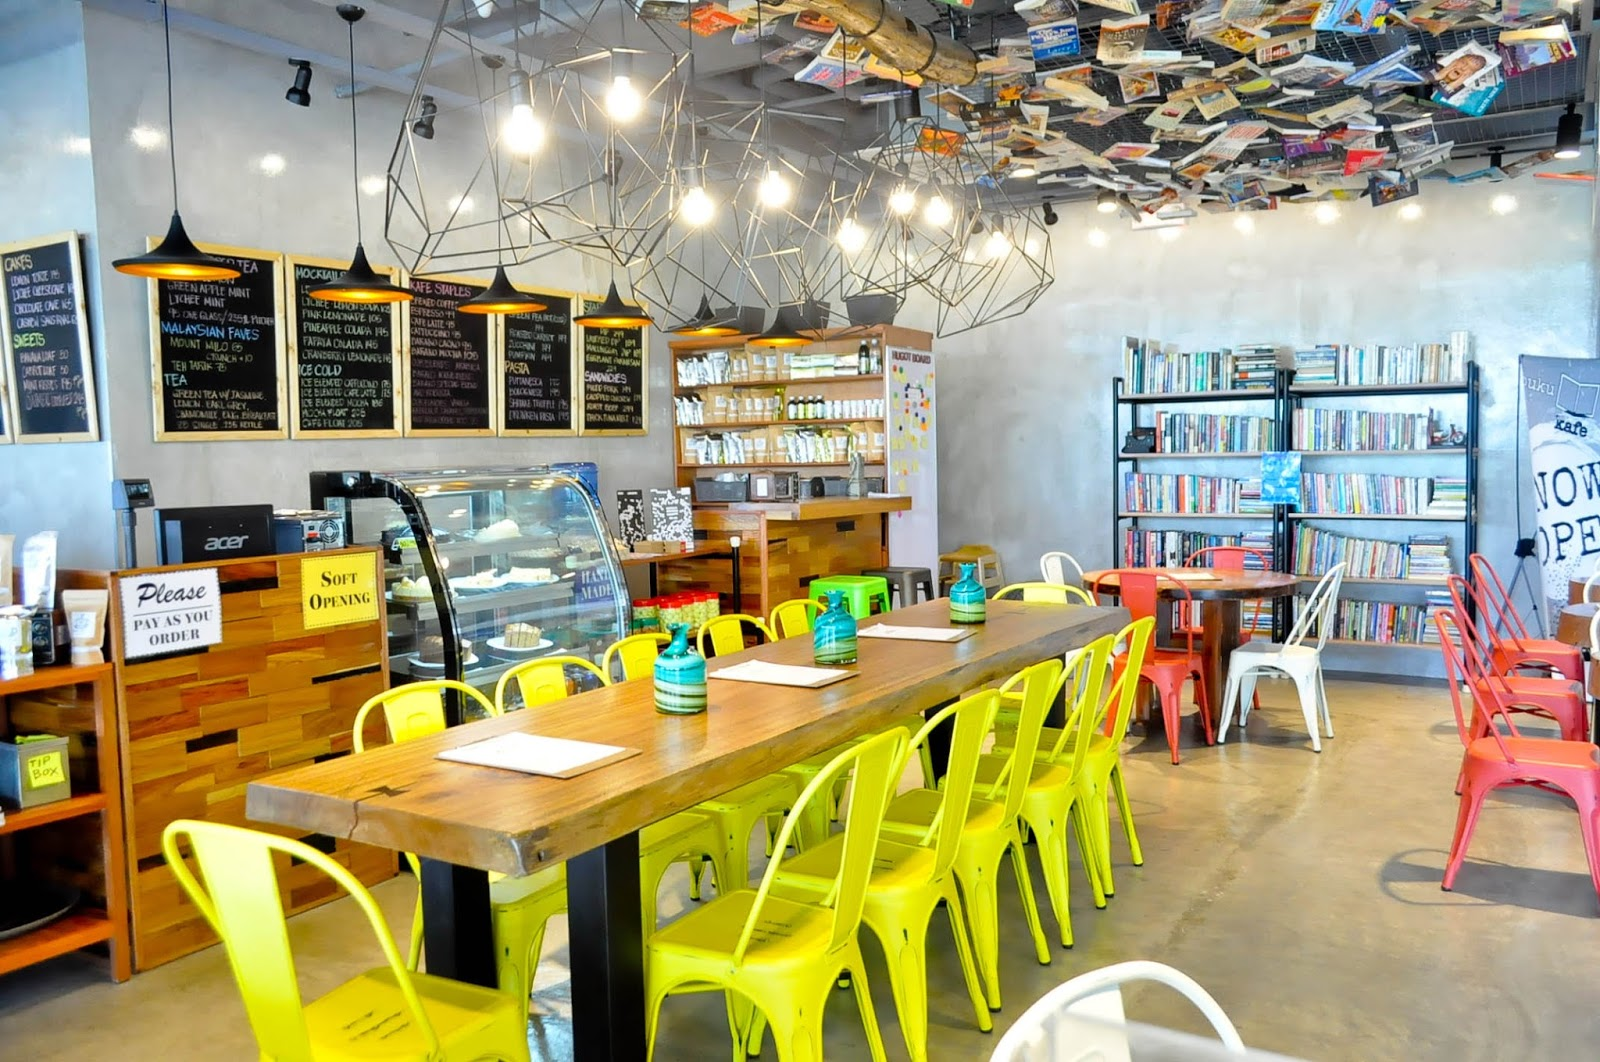 Buku buku kafe the district imus tales escapades its not only good for groups having it in the center is like an invitation to customers to gather share the table and stopboris Gallery